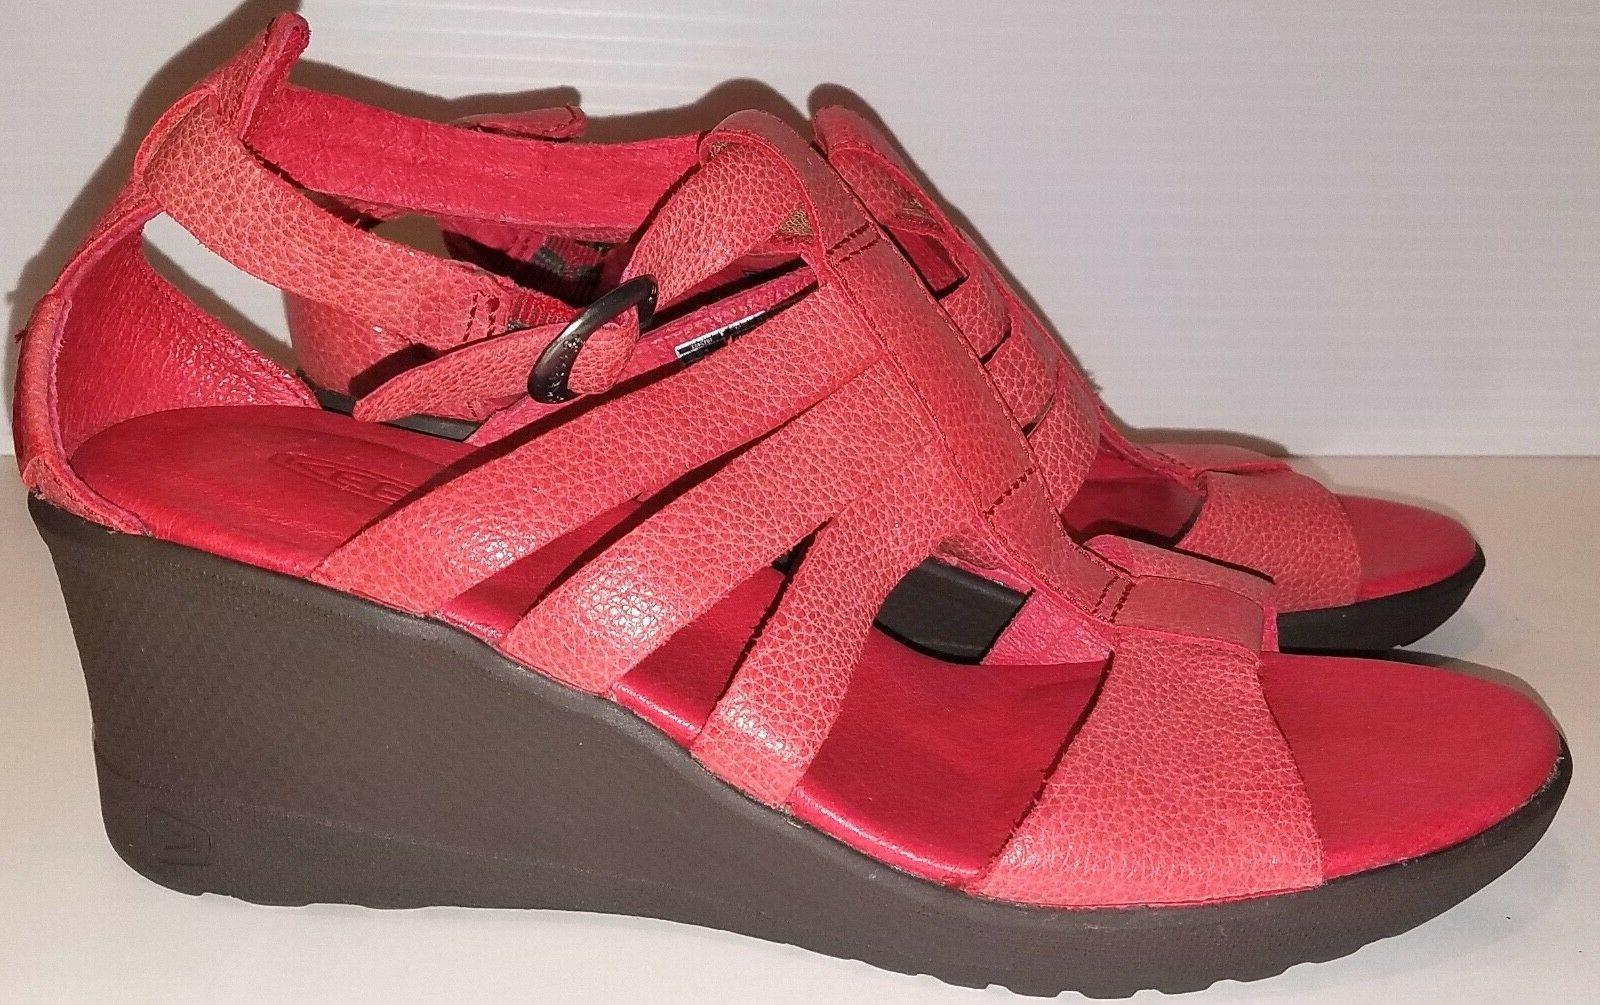 KEEN WOMEN'S VICTORIA WEDGE SANDAL RED Size 6.5